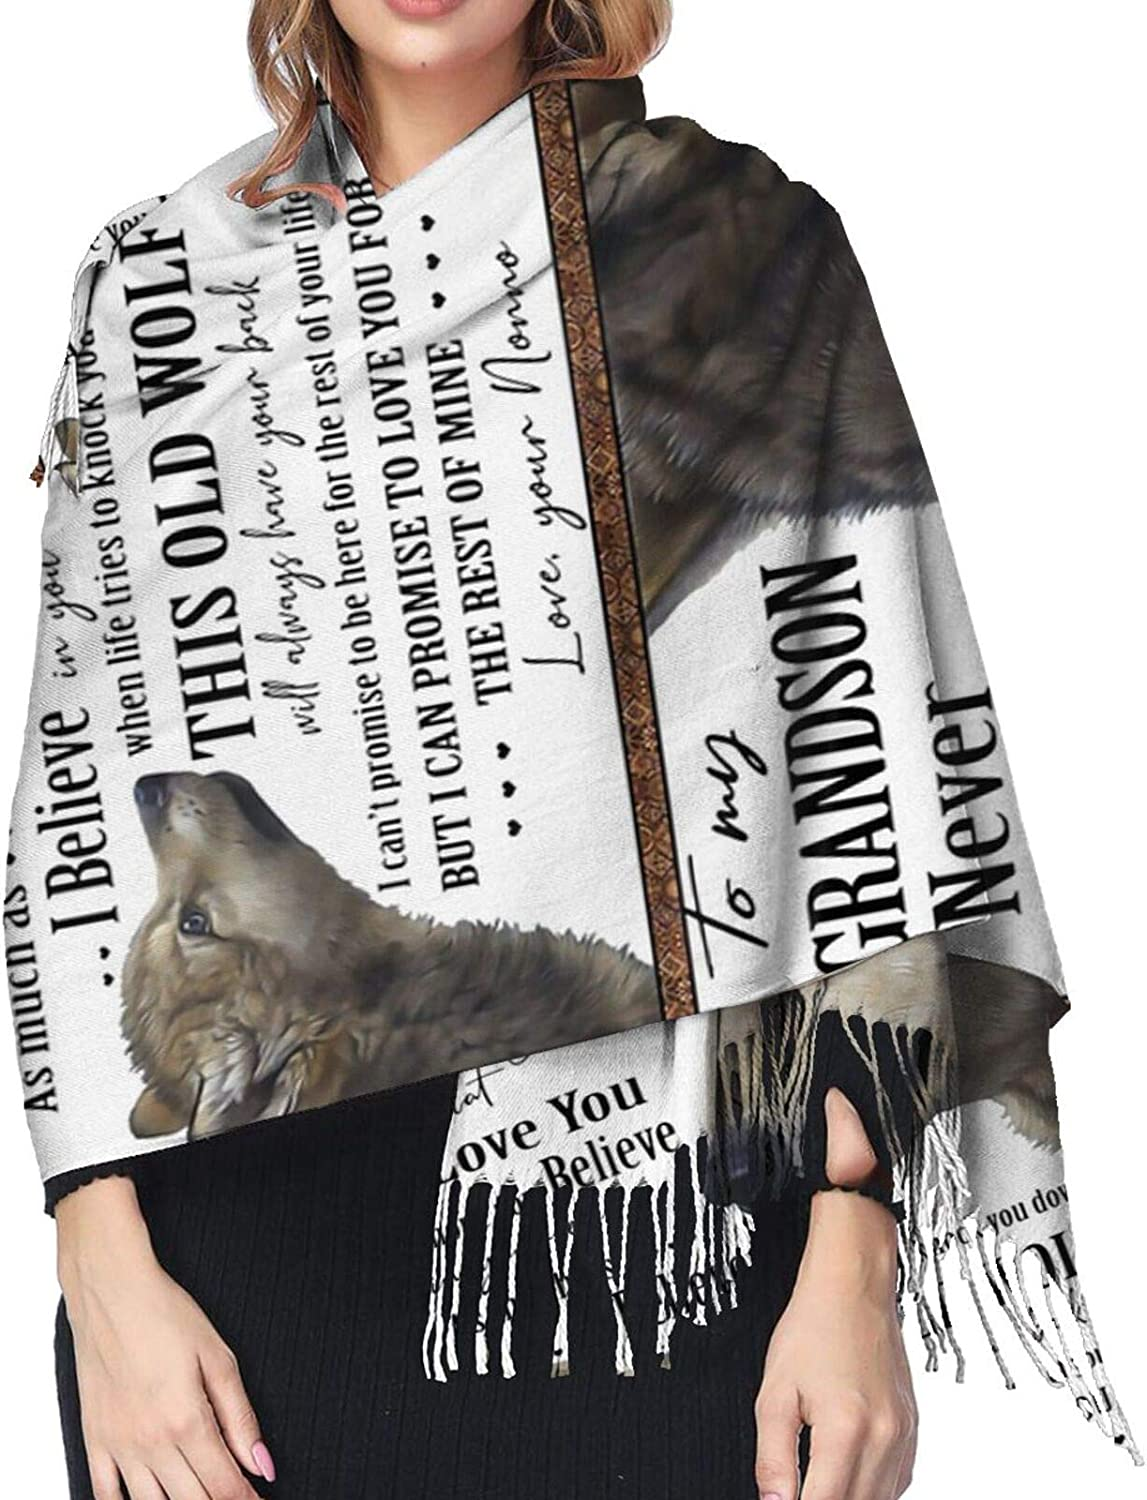 To My Grandson Cashmere Feel Scarf Lightweight Soft Scarfs For Boys Girls Creative Warm Cold Weather Blanket Scarf